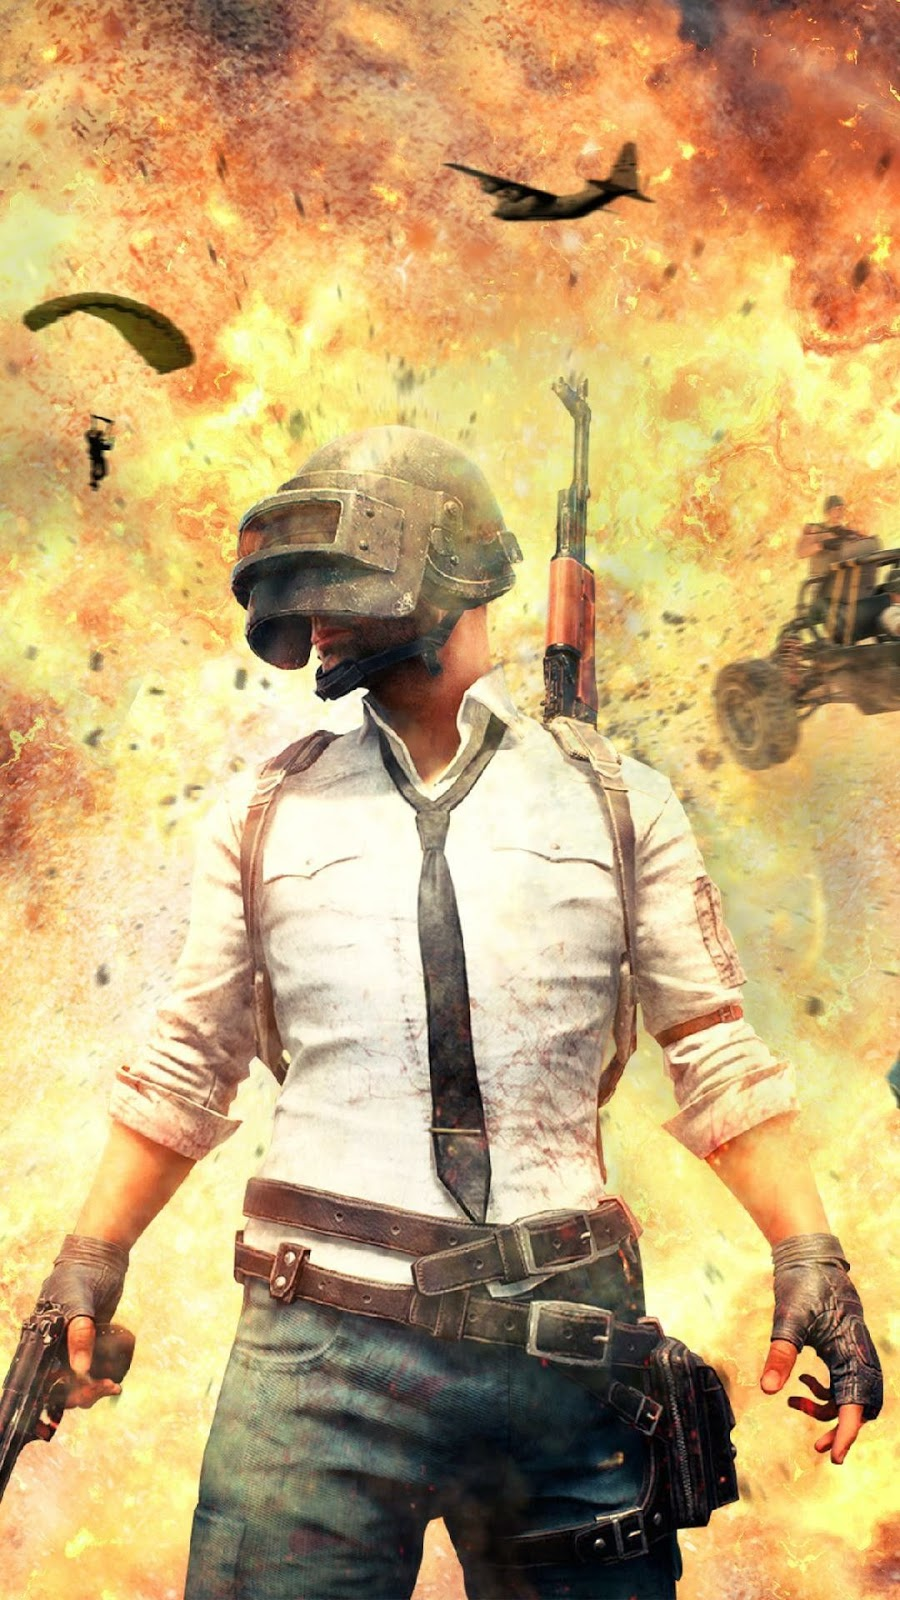 Pubg Mobile Wallpapers 4k Ultra Hd Pubg Mobile Best Quality